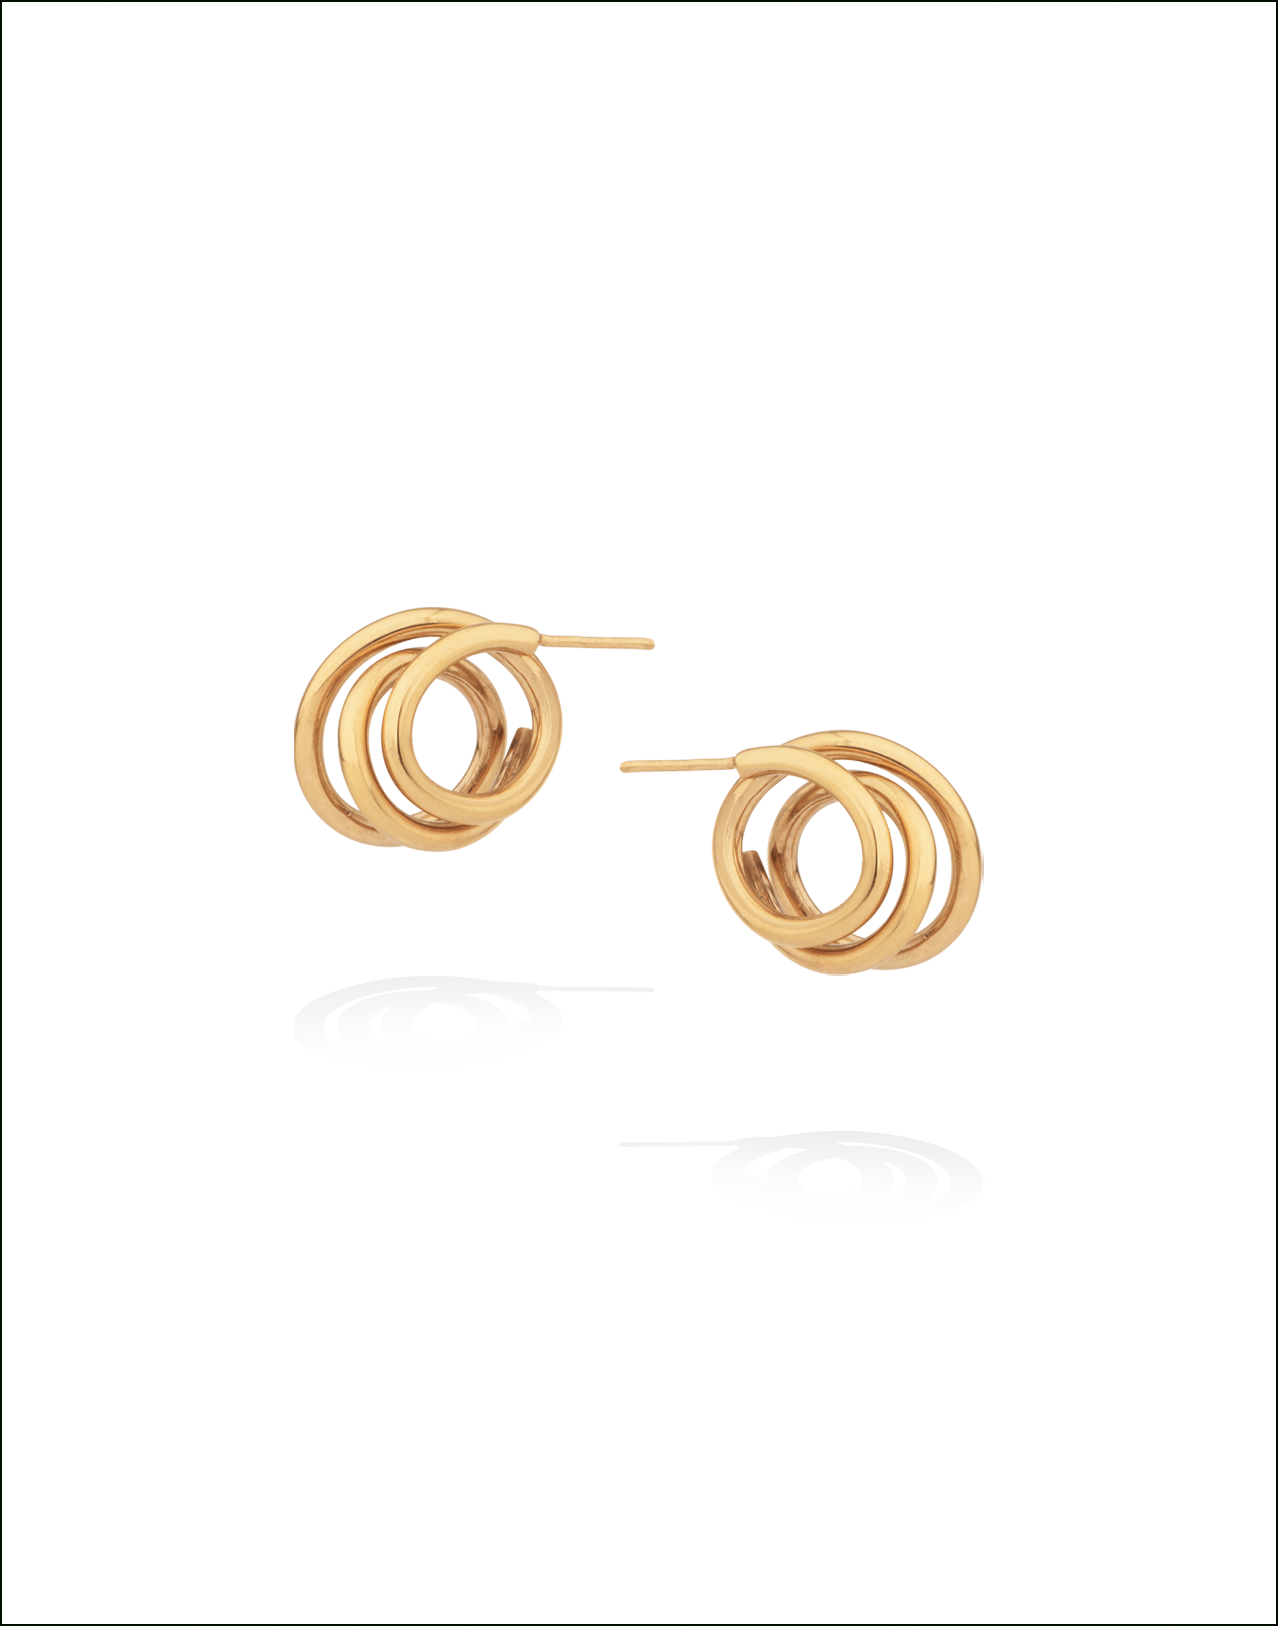 Completedworks-Earrings-Gold-Vermeil-Flow-3-1.png